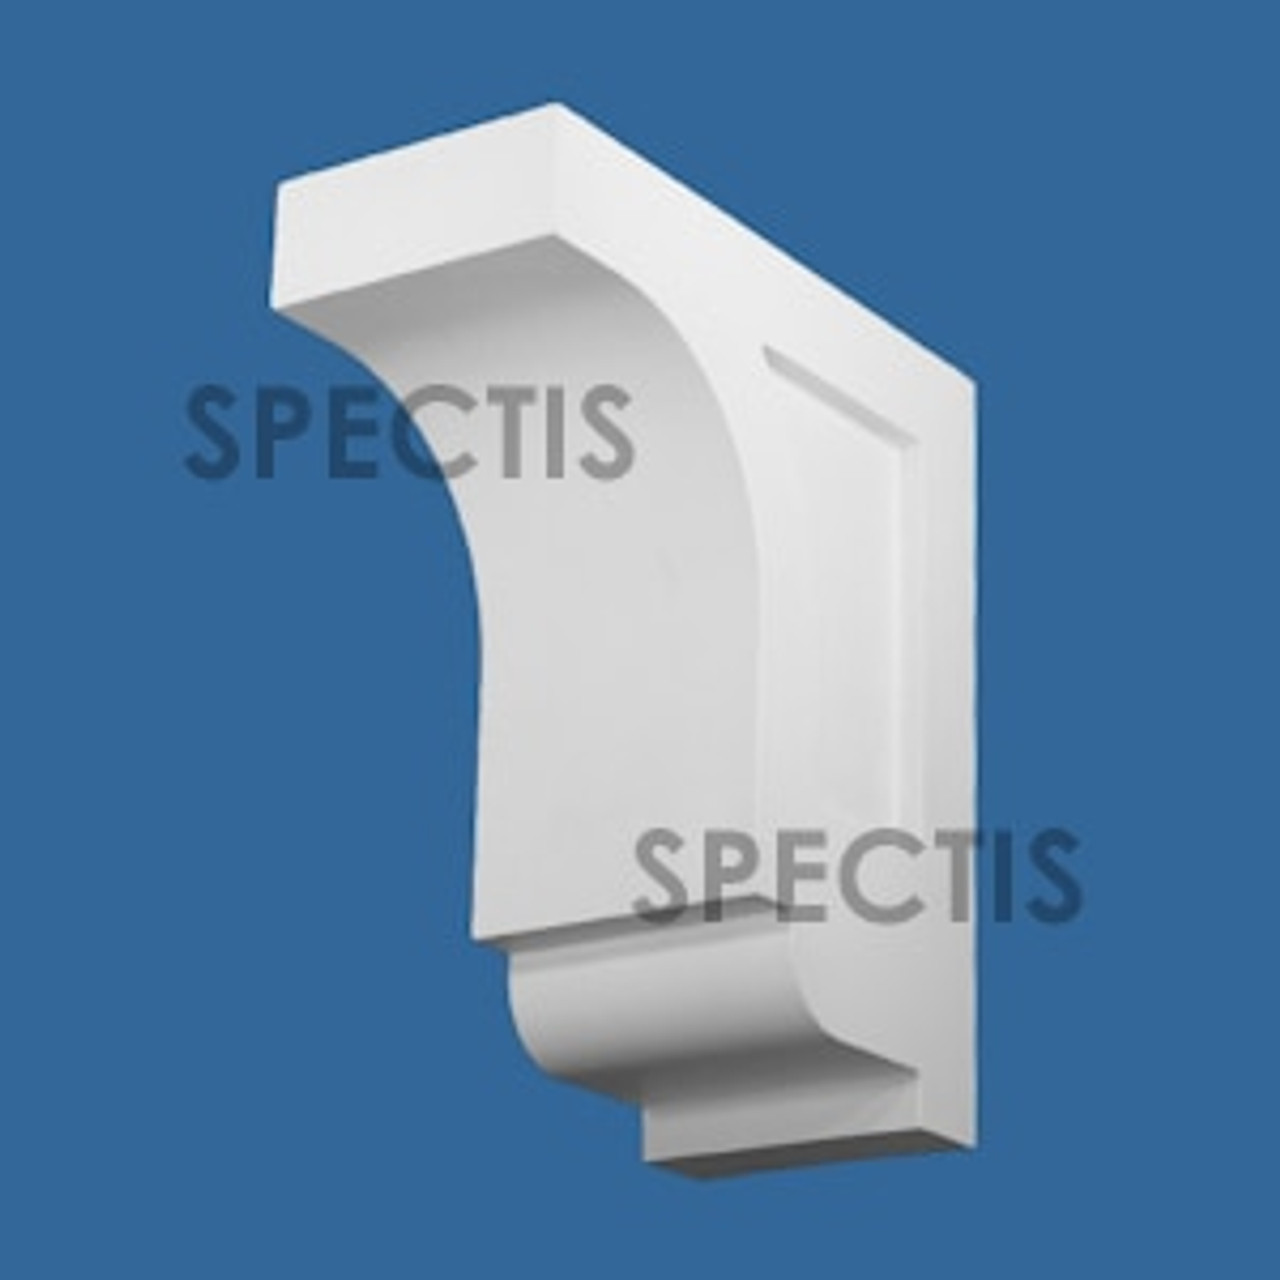 """BL3078 Spectis Eave Block or Bracket 6""""W x 15.13""""H x 14"""" Projection"""